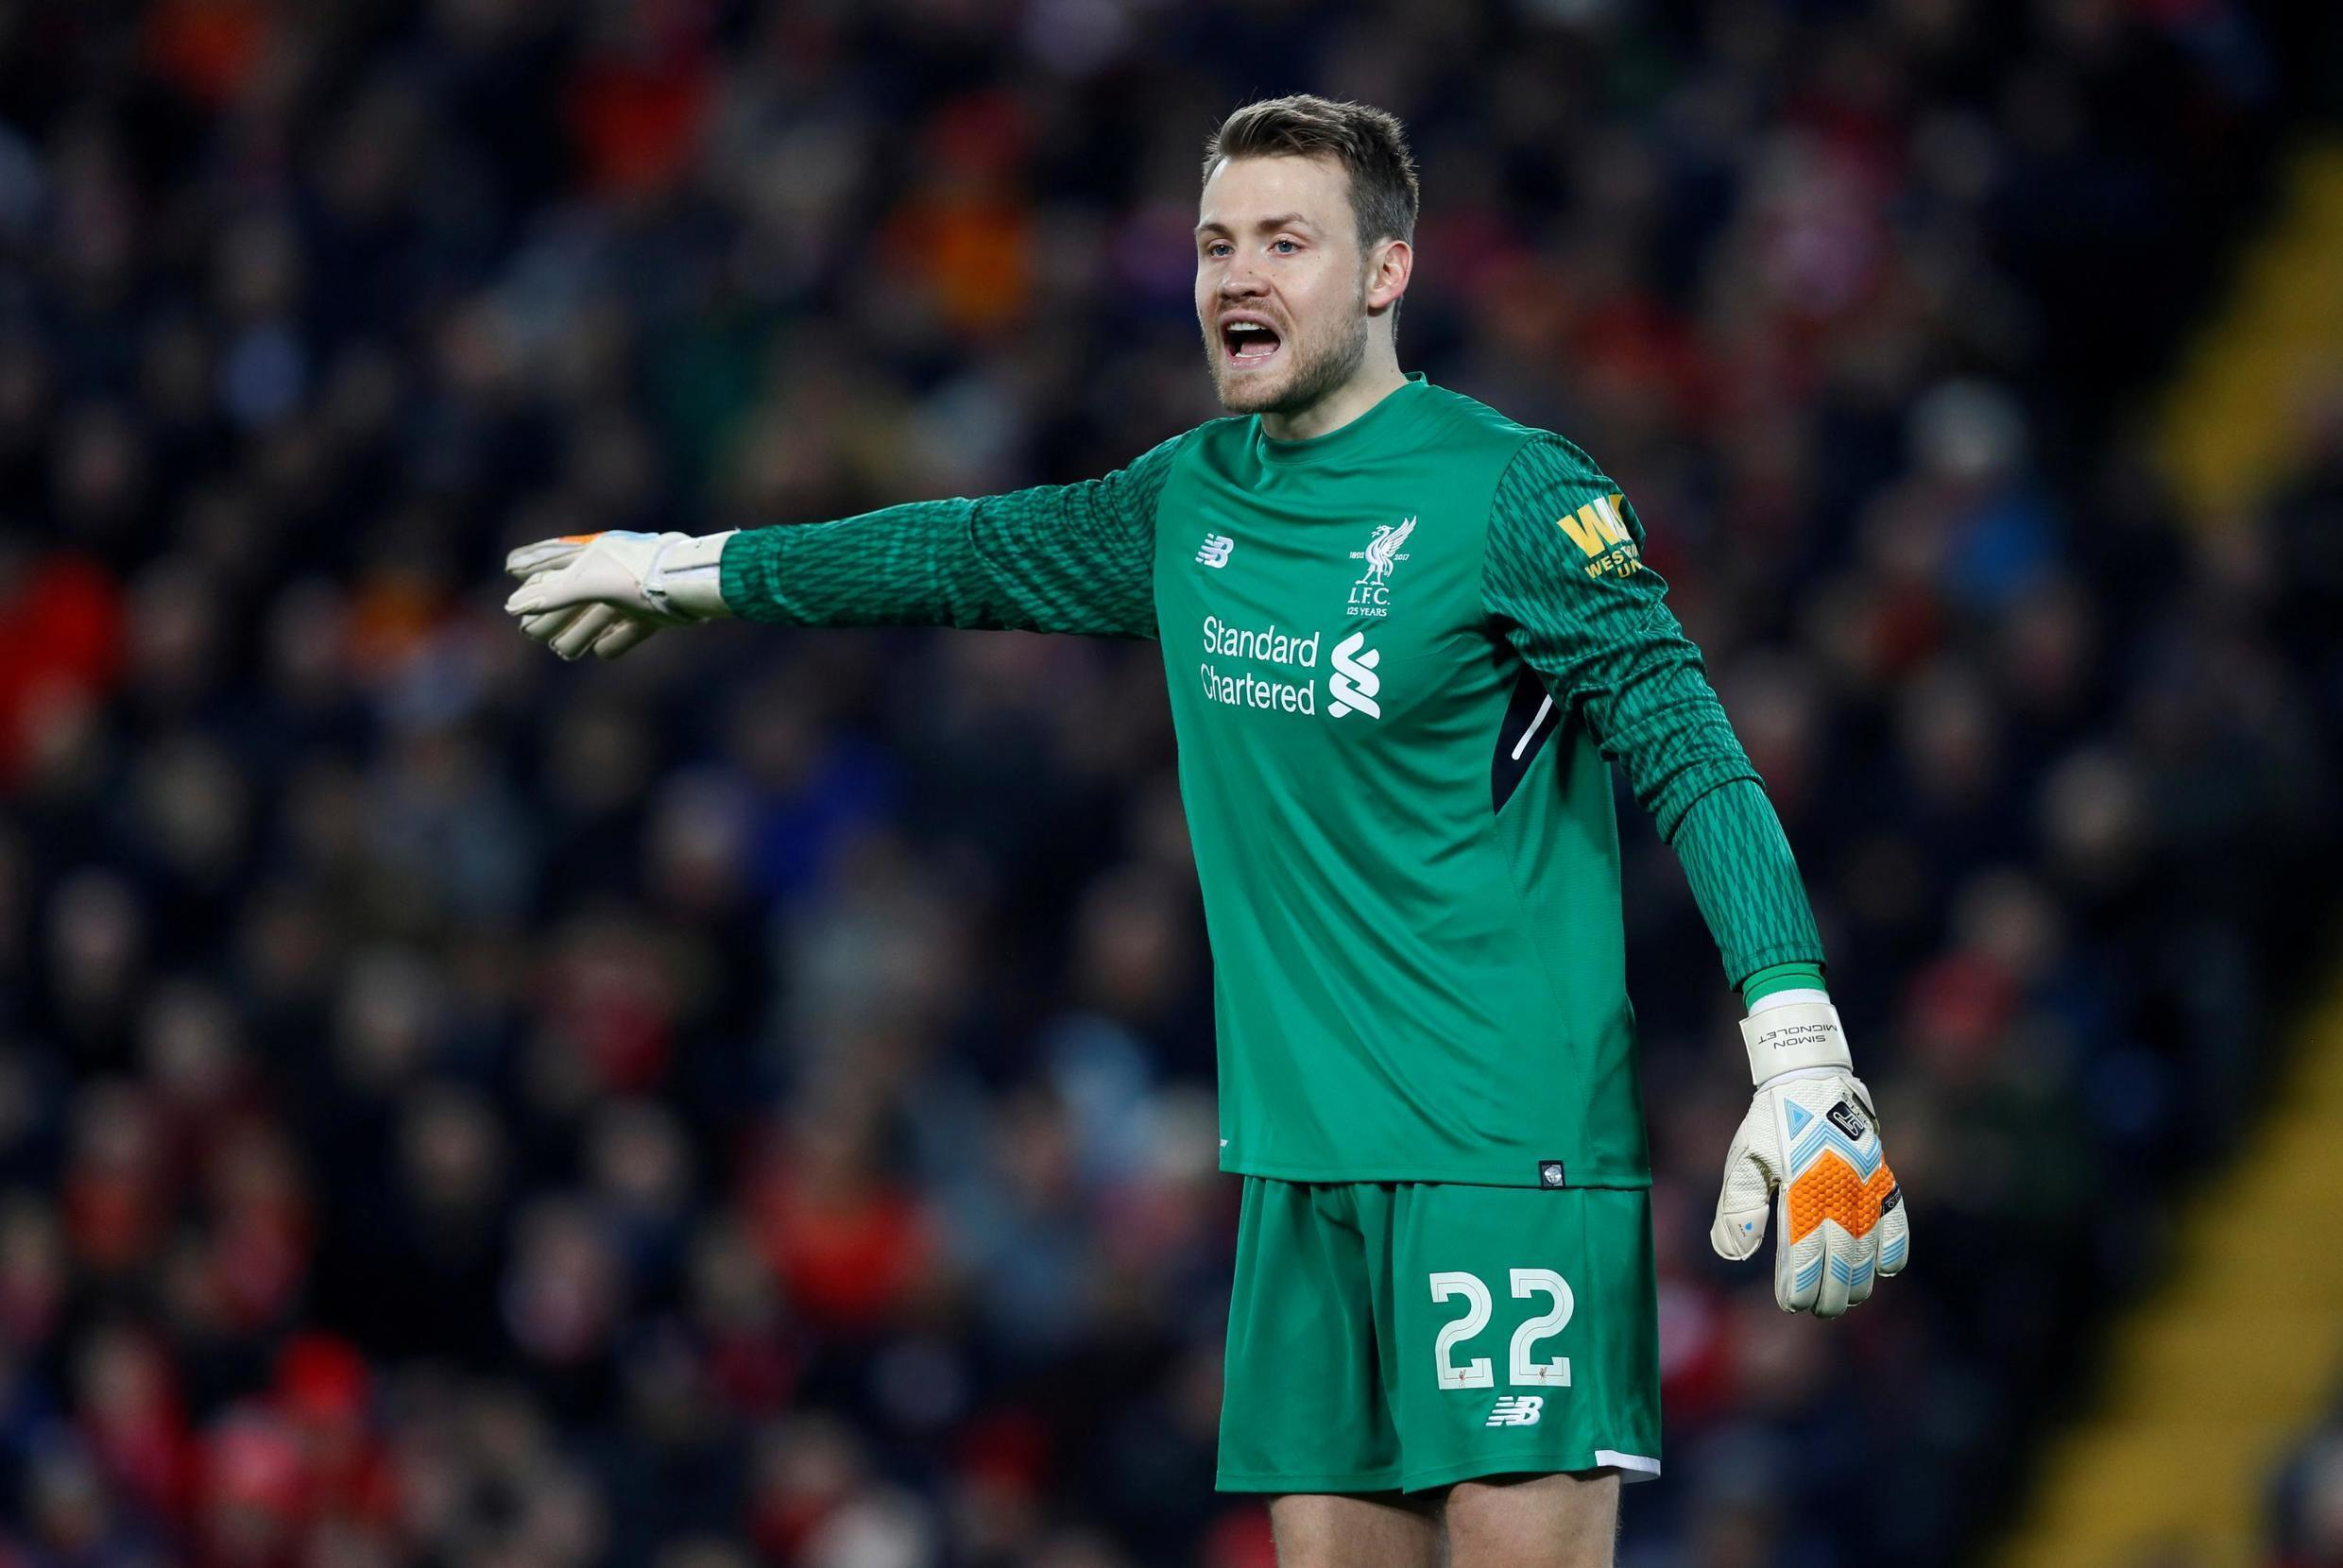 Simon Mignolet arrived at Liverpool in 2013 from Sunderland.